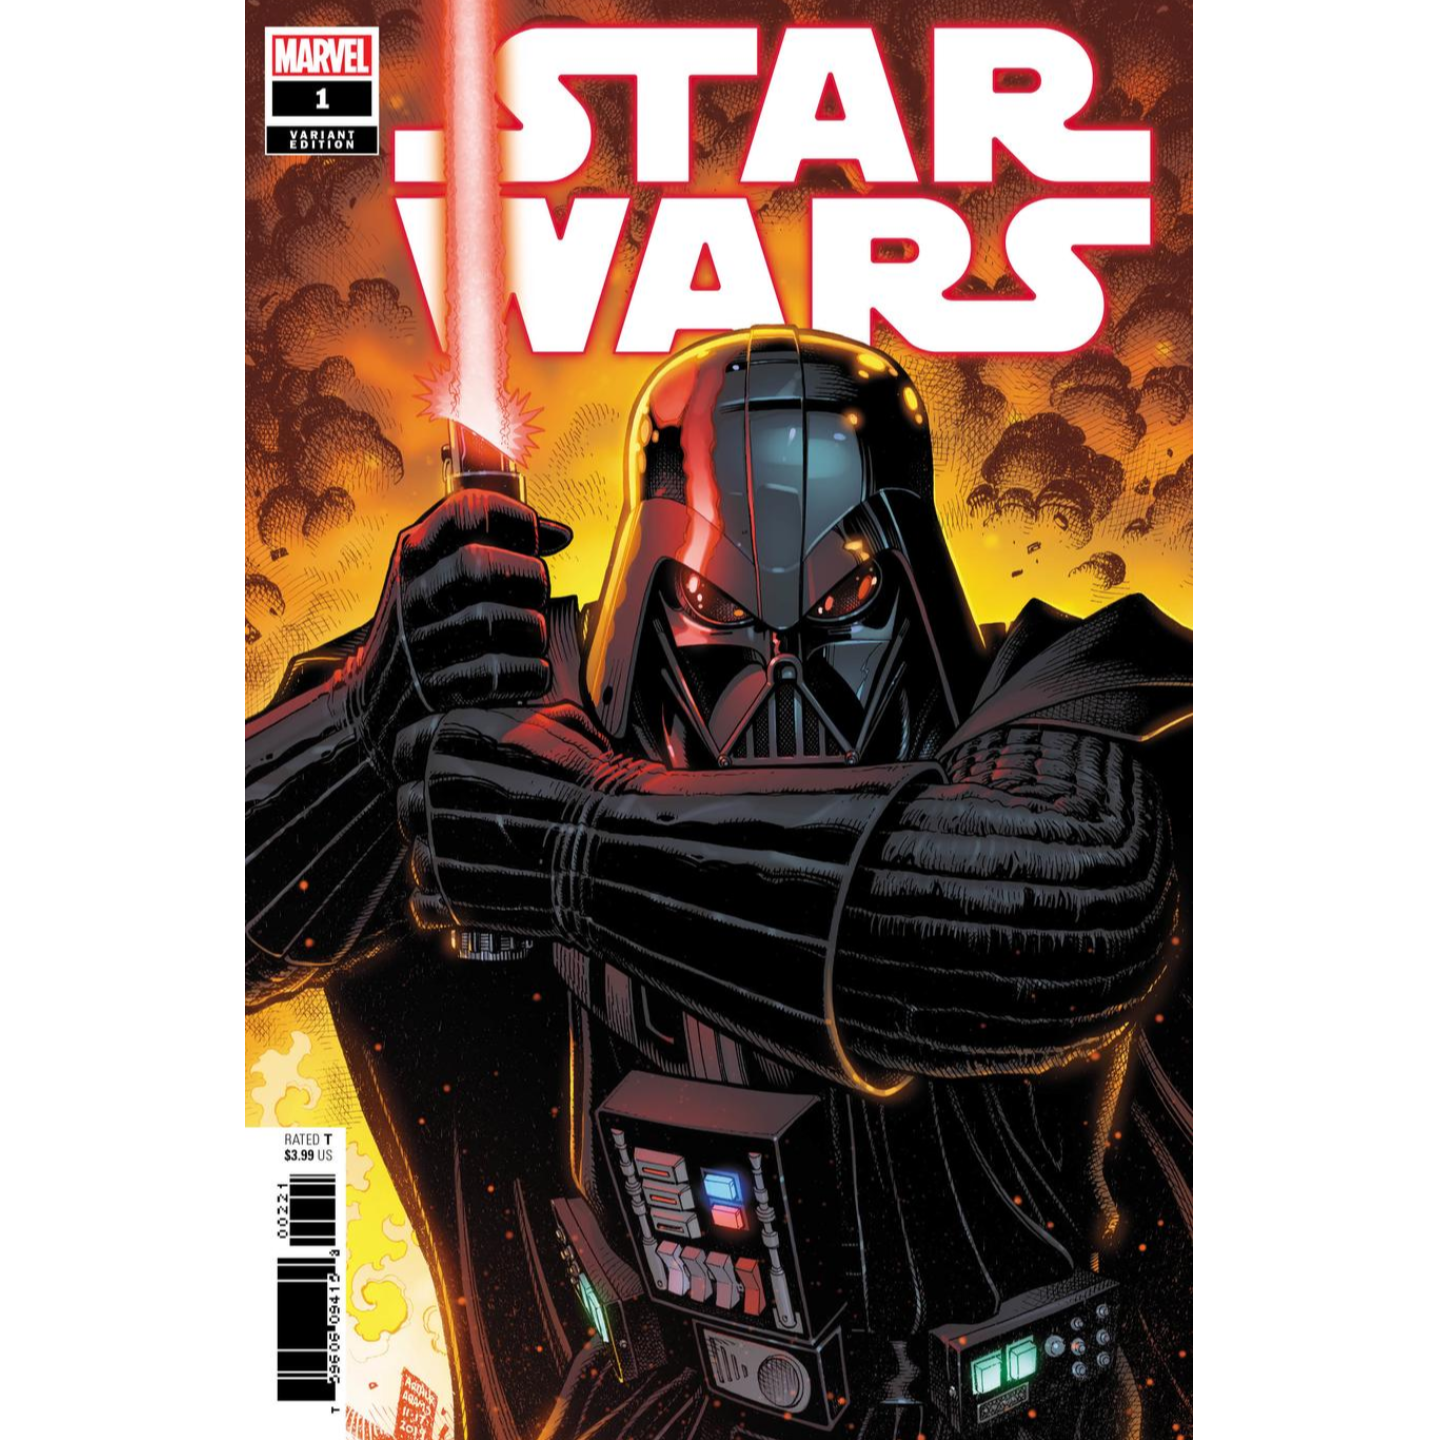 STAR WARS 1 - ARTHUR ADAMS VARIANT COVER